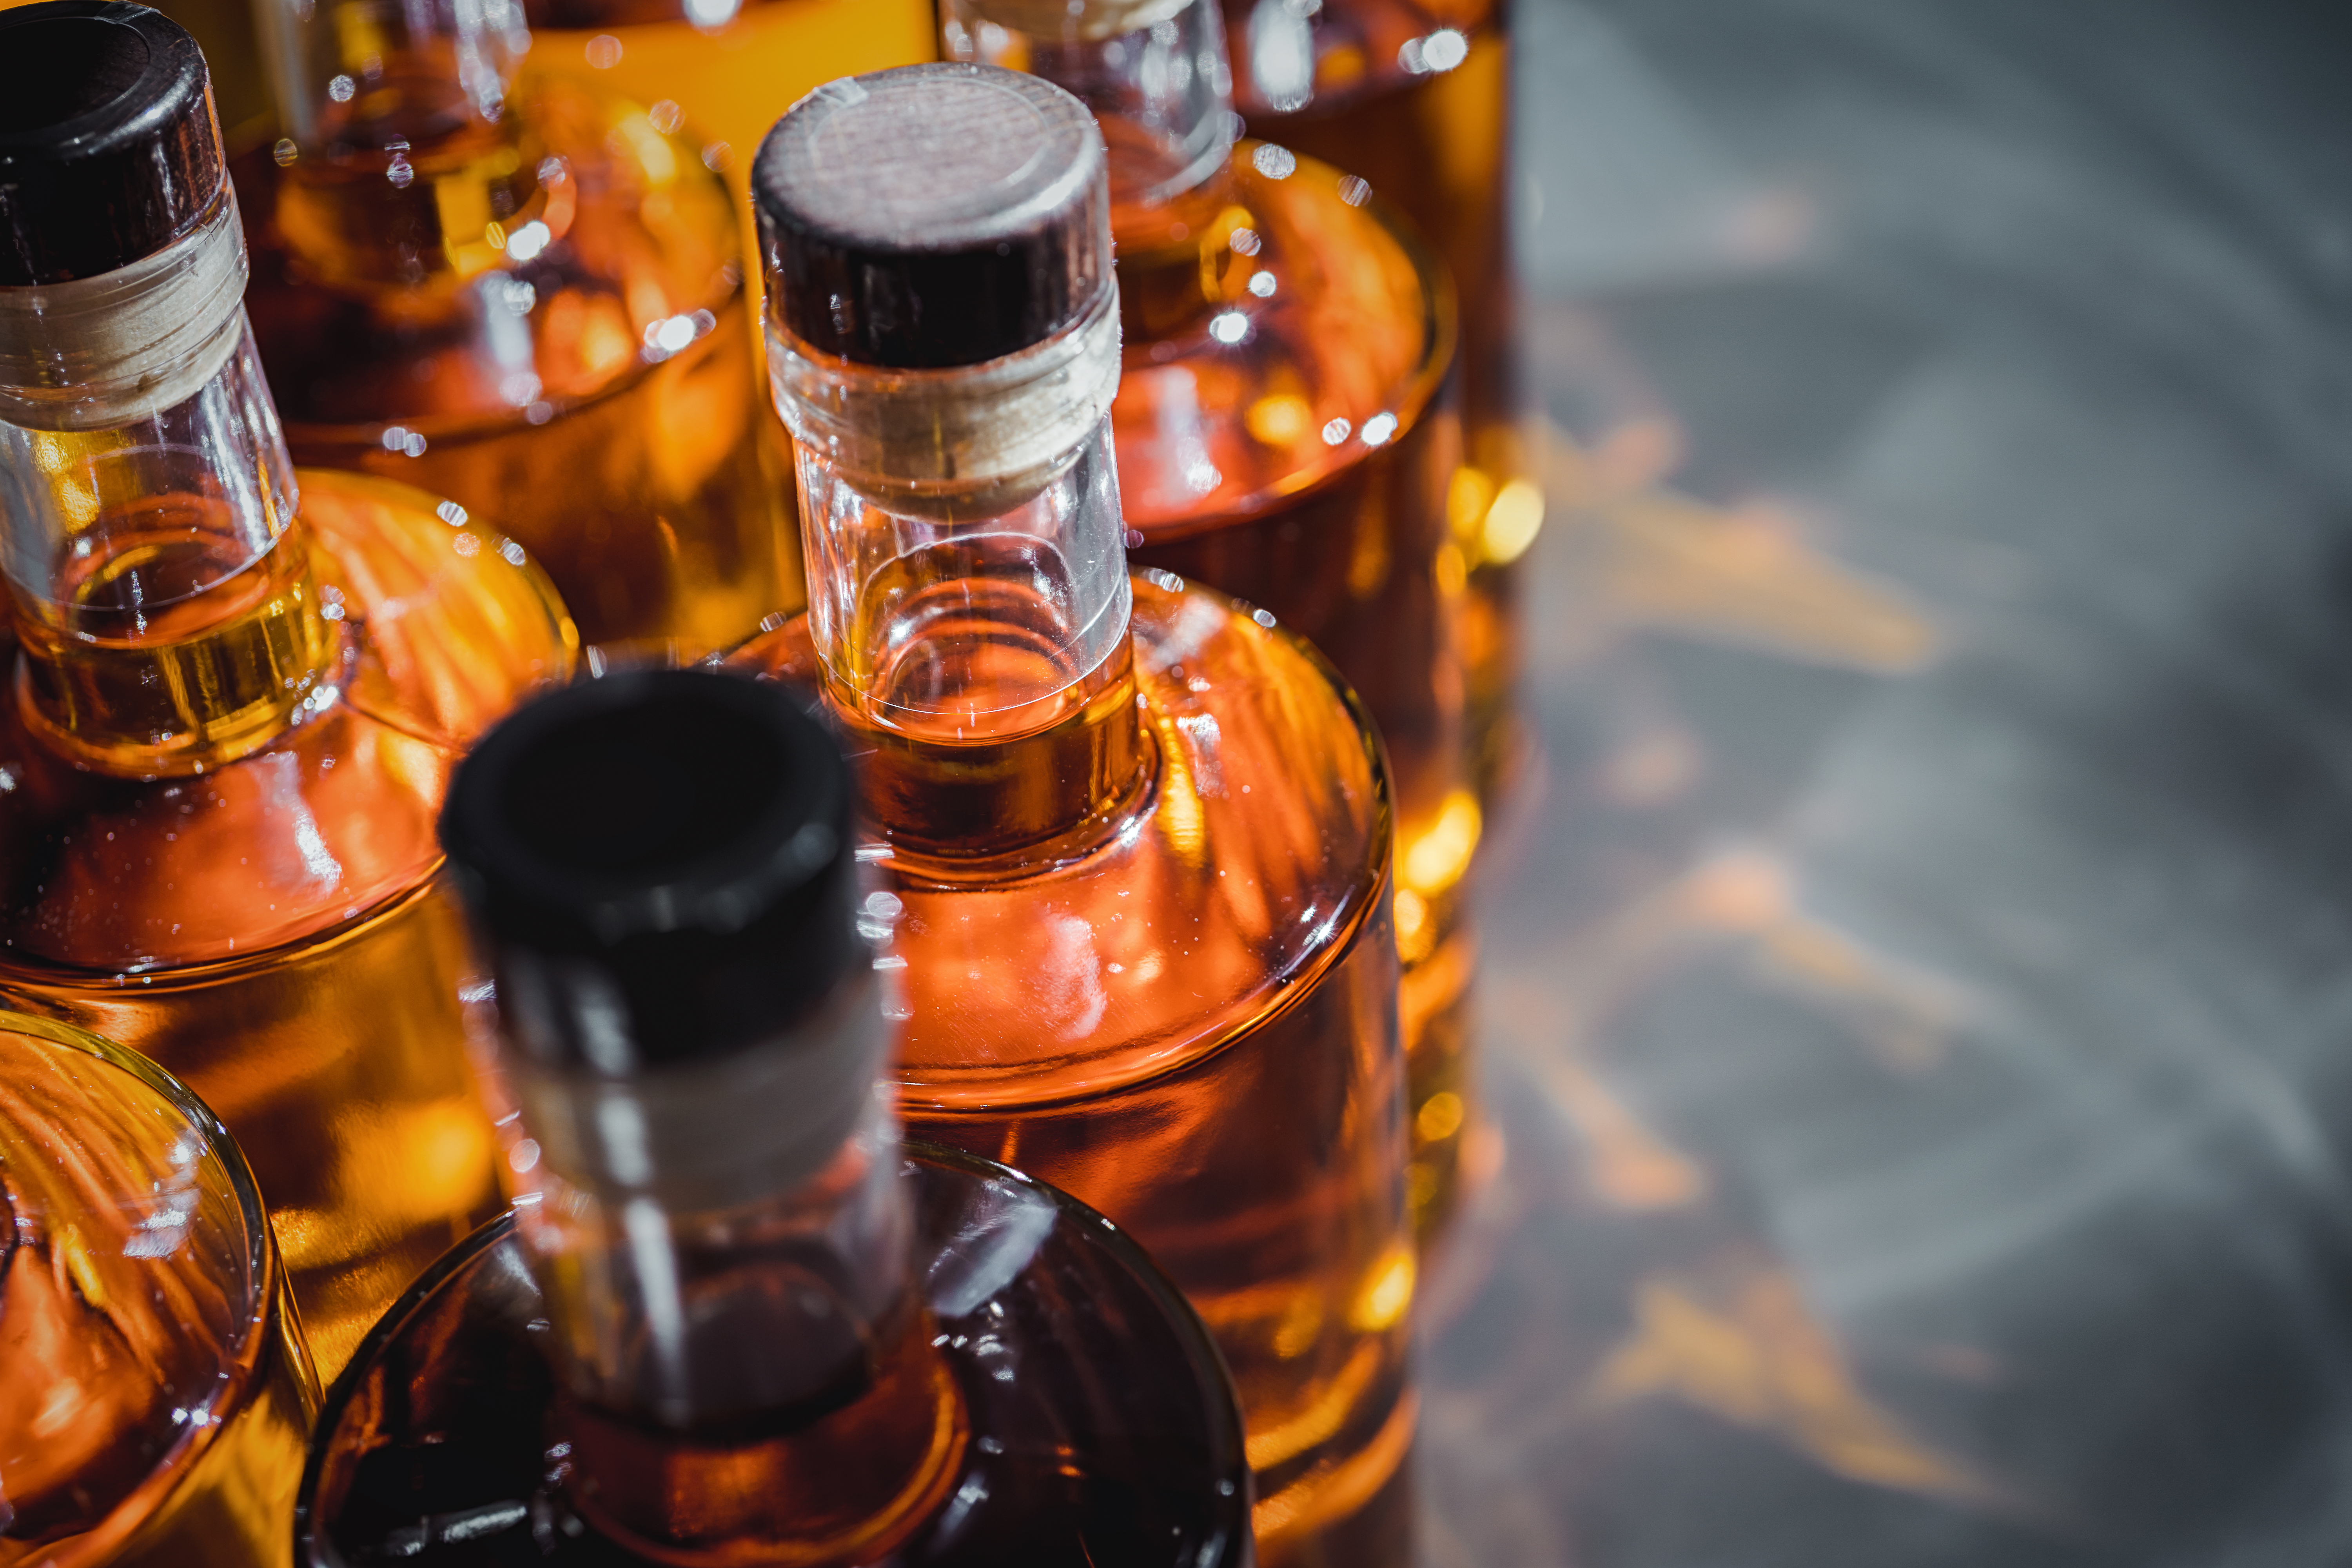 Small,Liquor,Production,Based,On,Maple,Syrup.,Multitude,Of,Pure